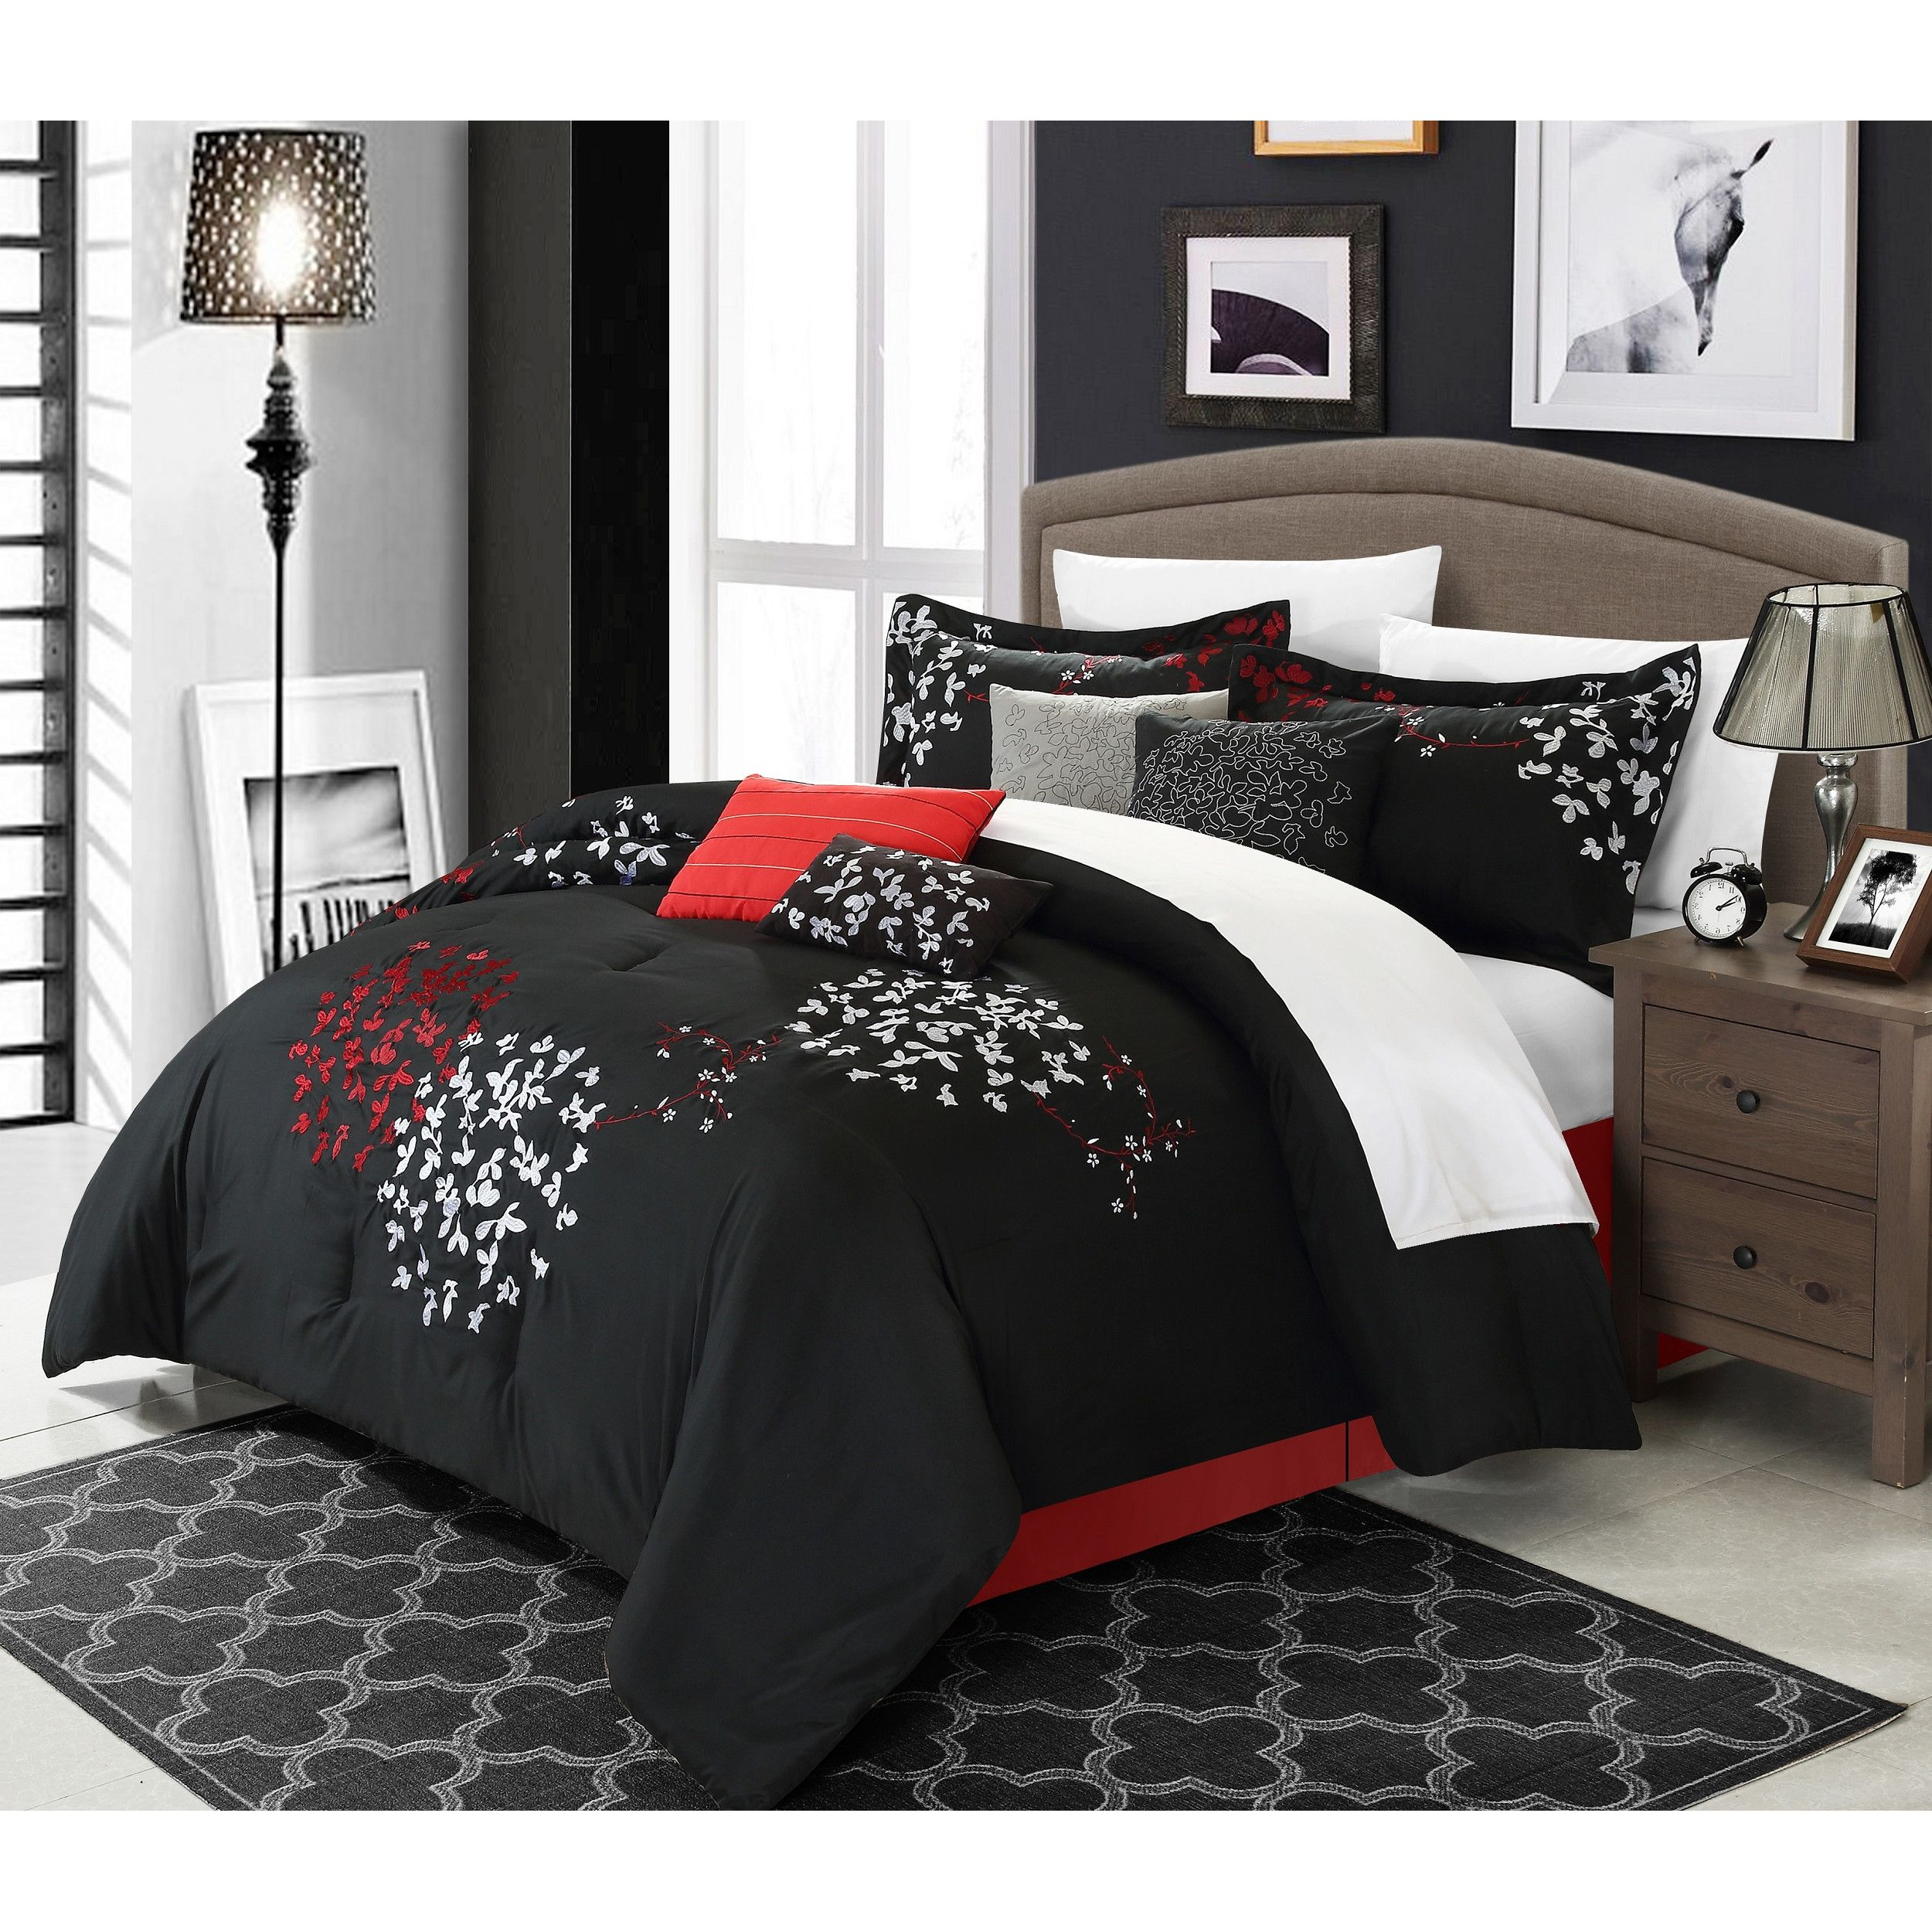 contemporary tov white headboard fullqueen beautiful bed for photo image bedding wonderful twin queen full design furniture king finley ideas